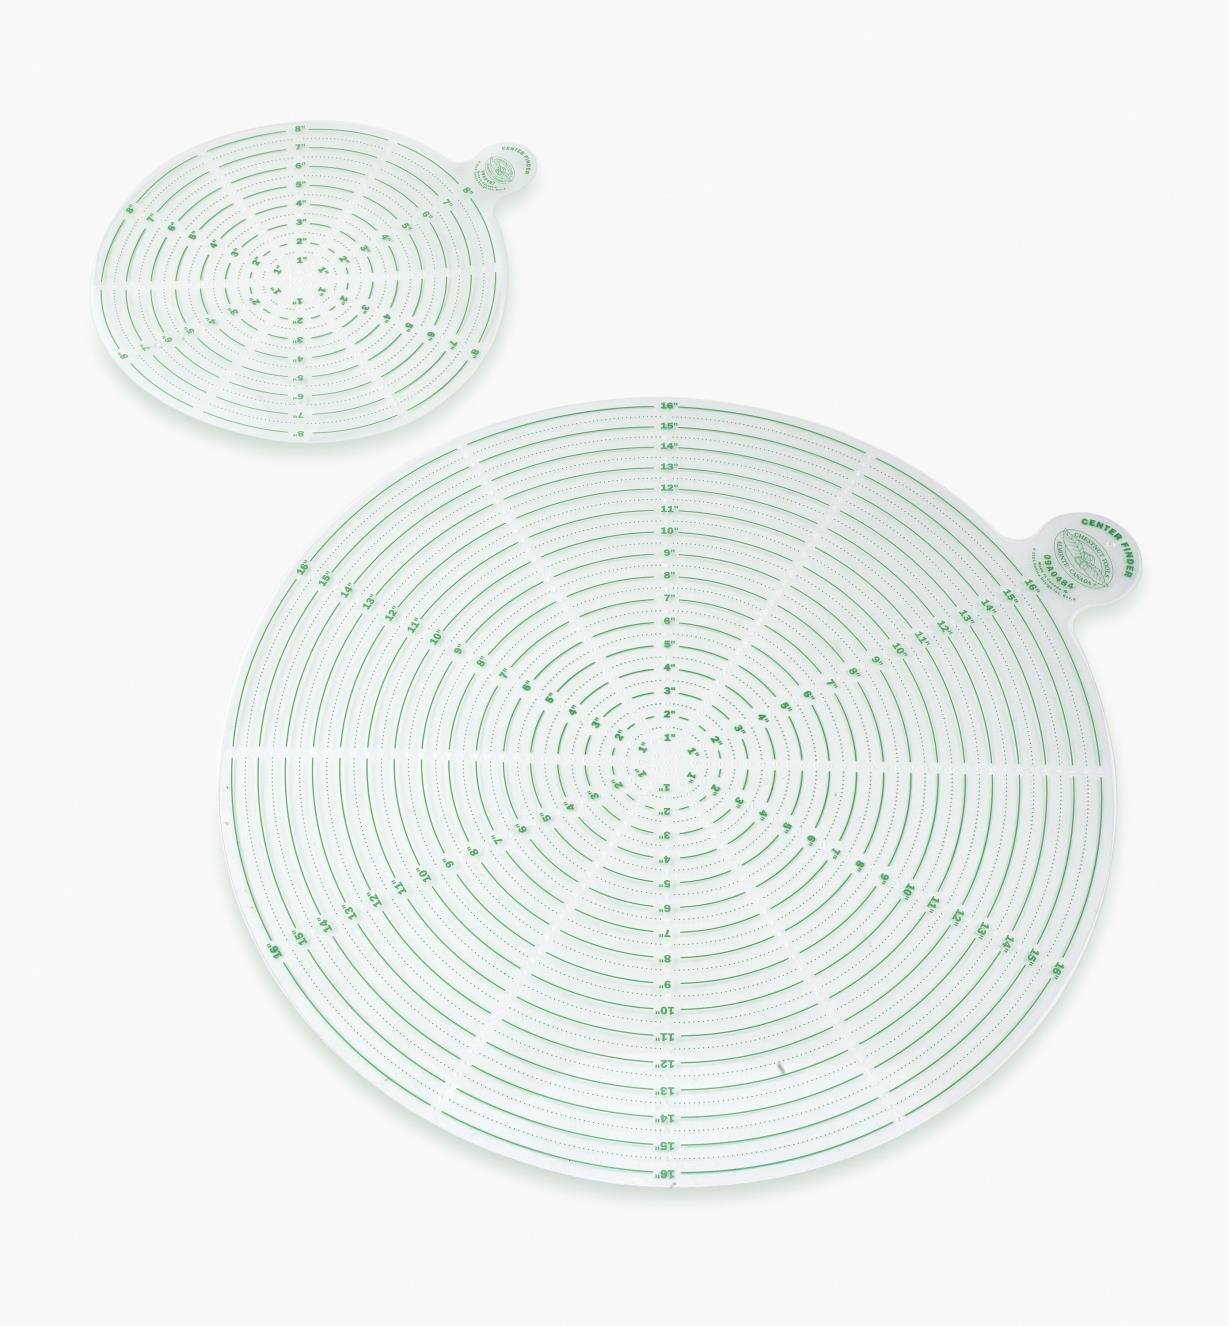 09A0489 - Center Finders, set of 2